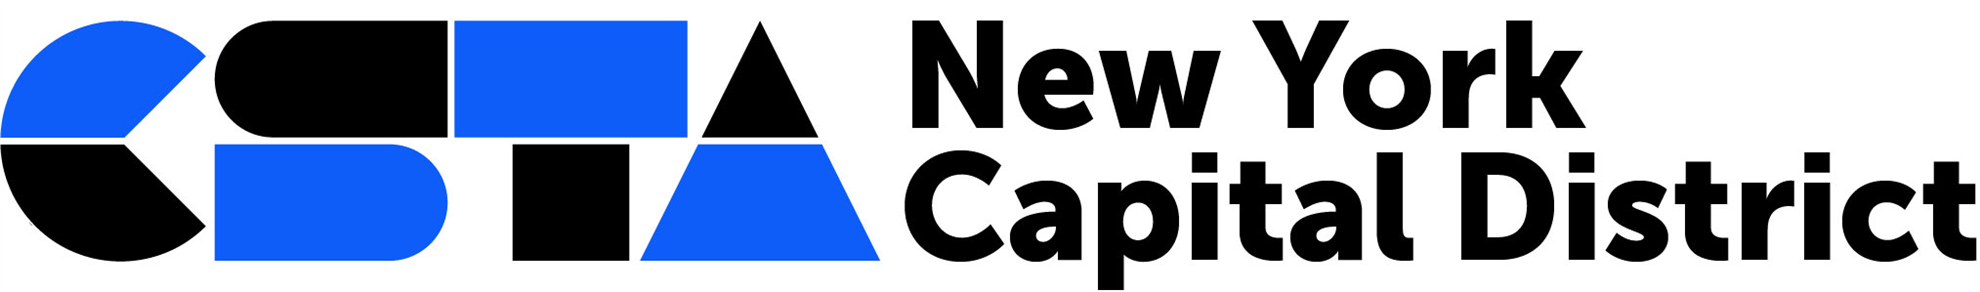 CSTA New York Capital District logo